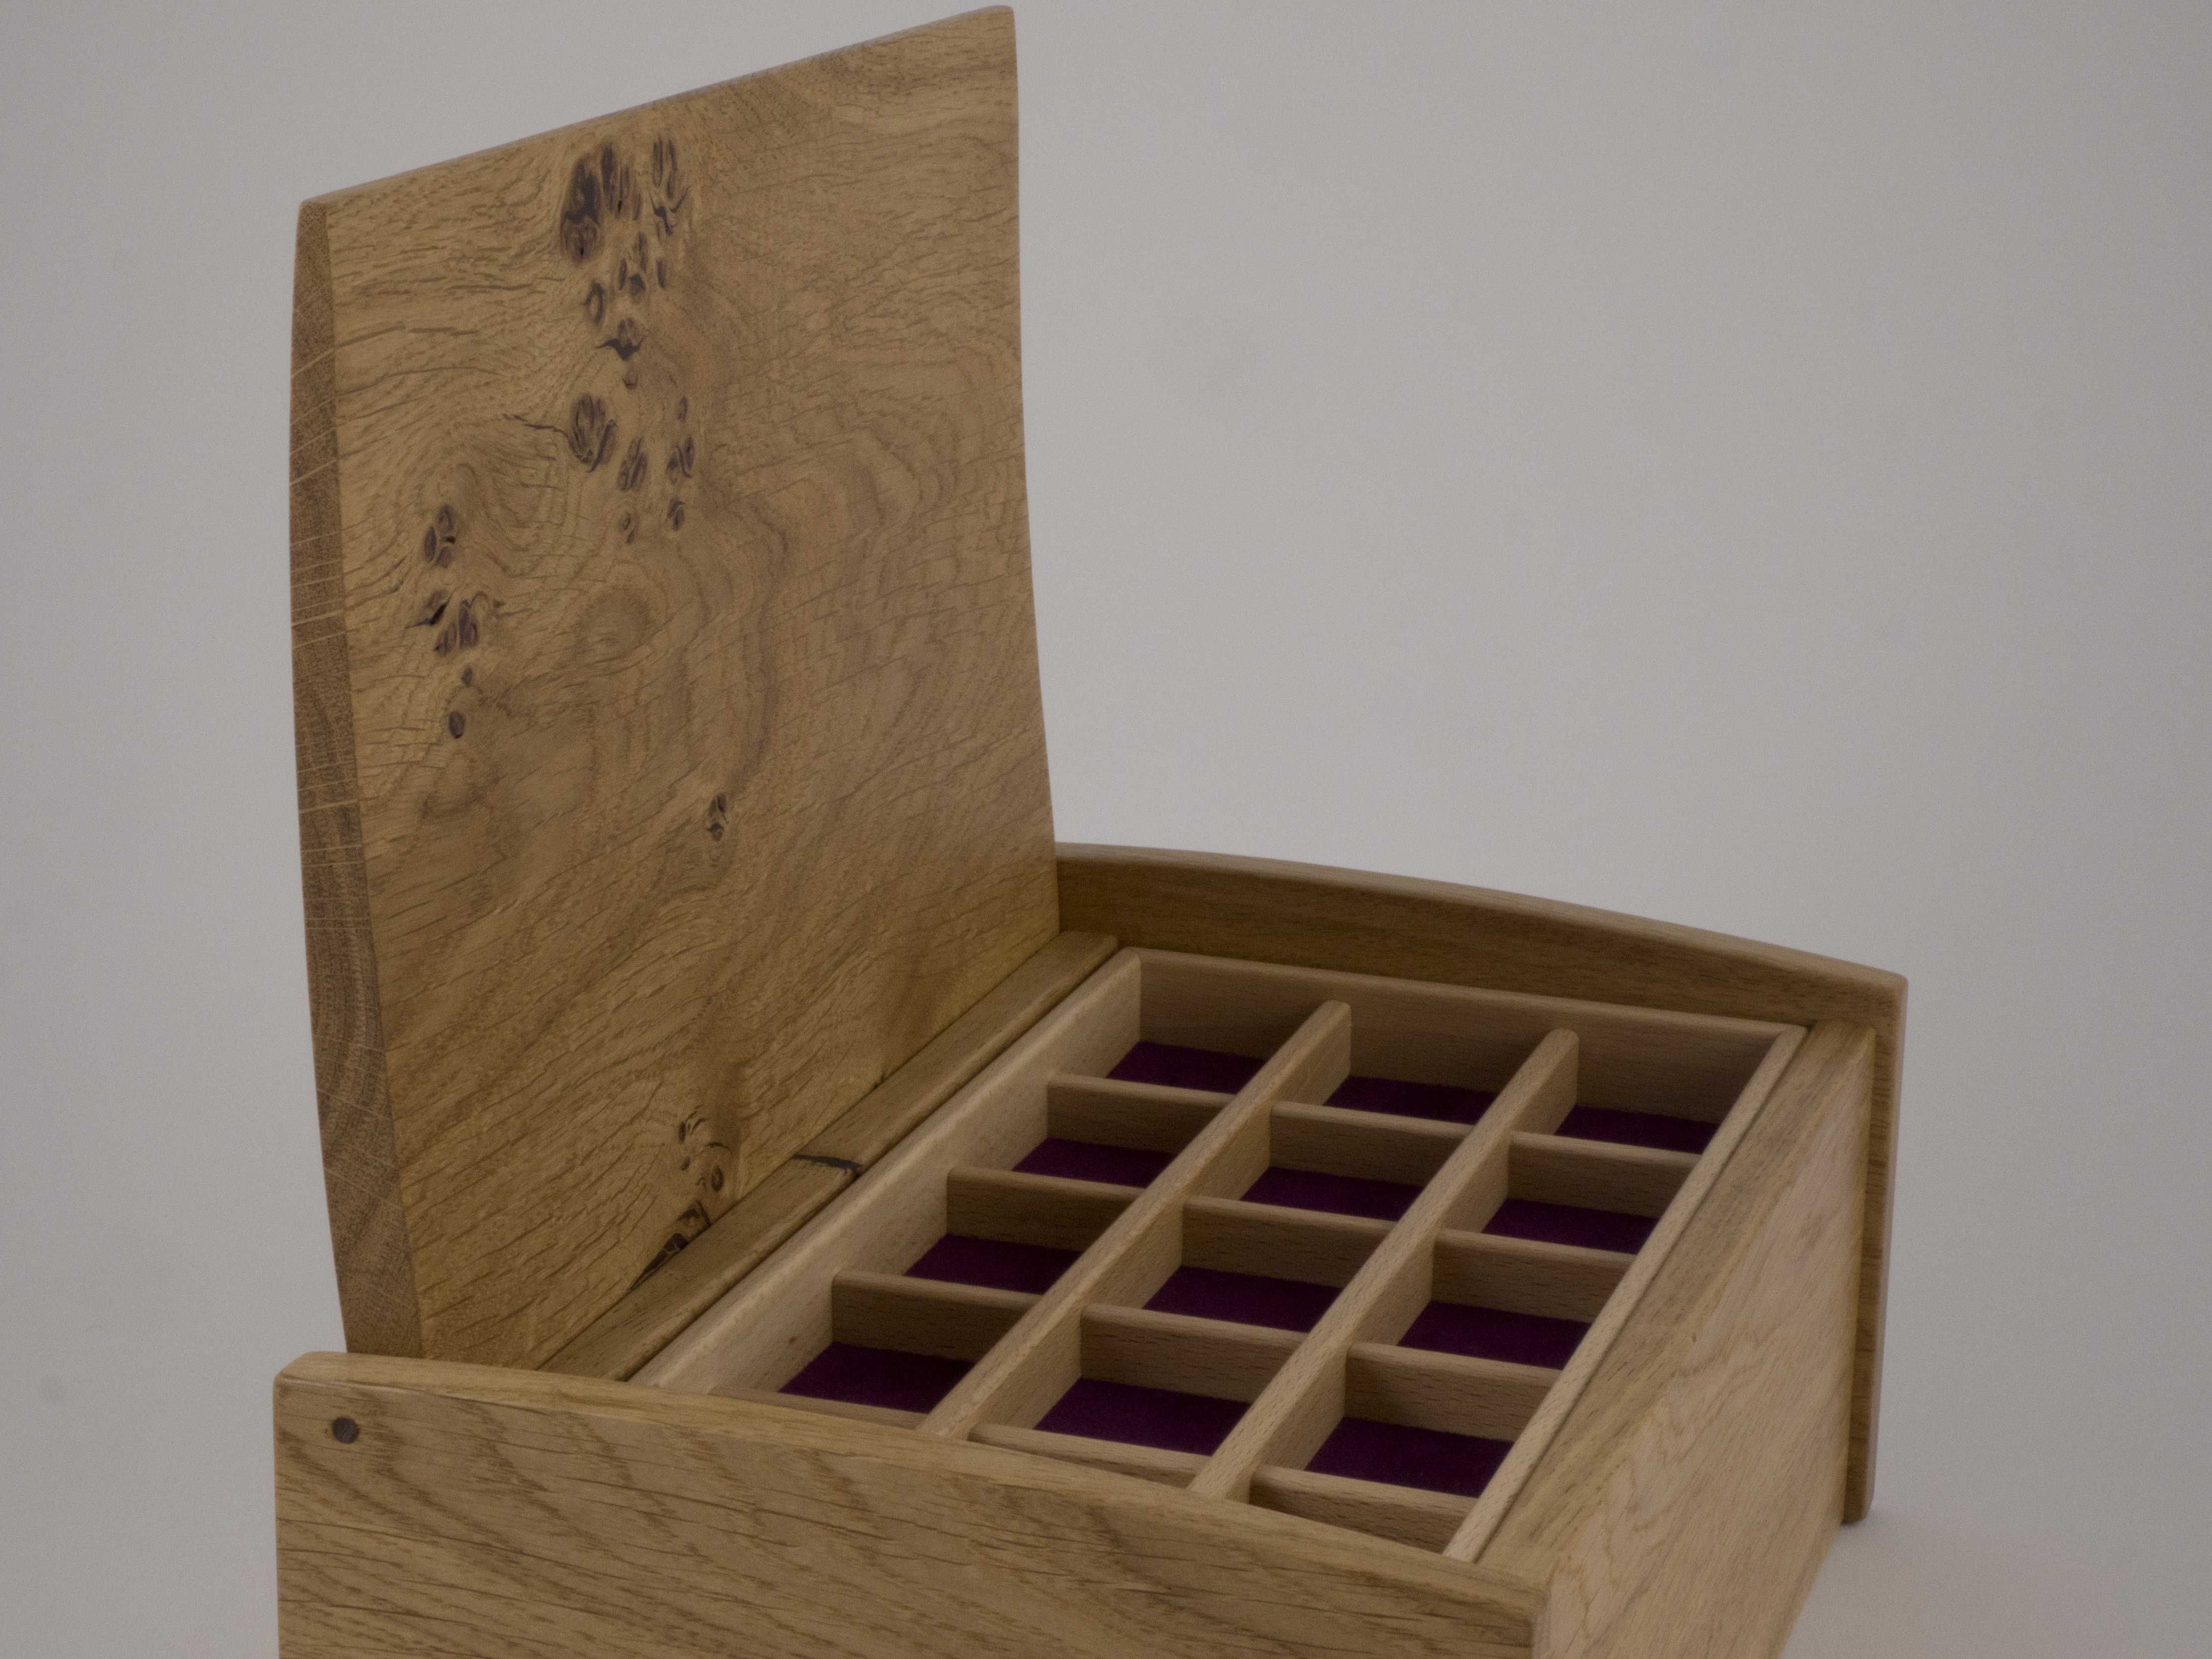 Side view of the jewellery box